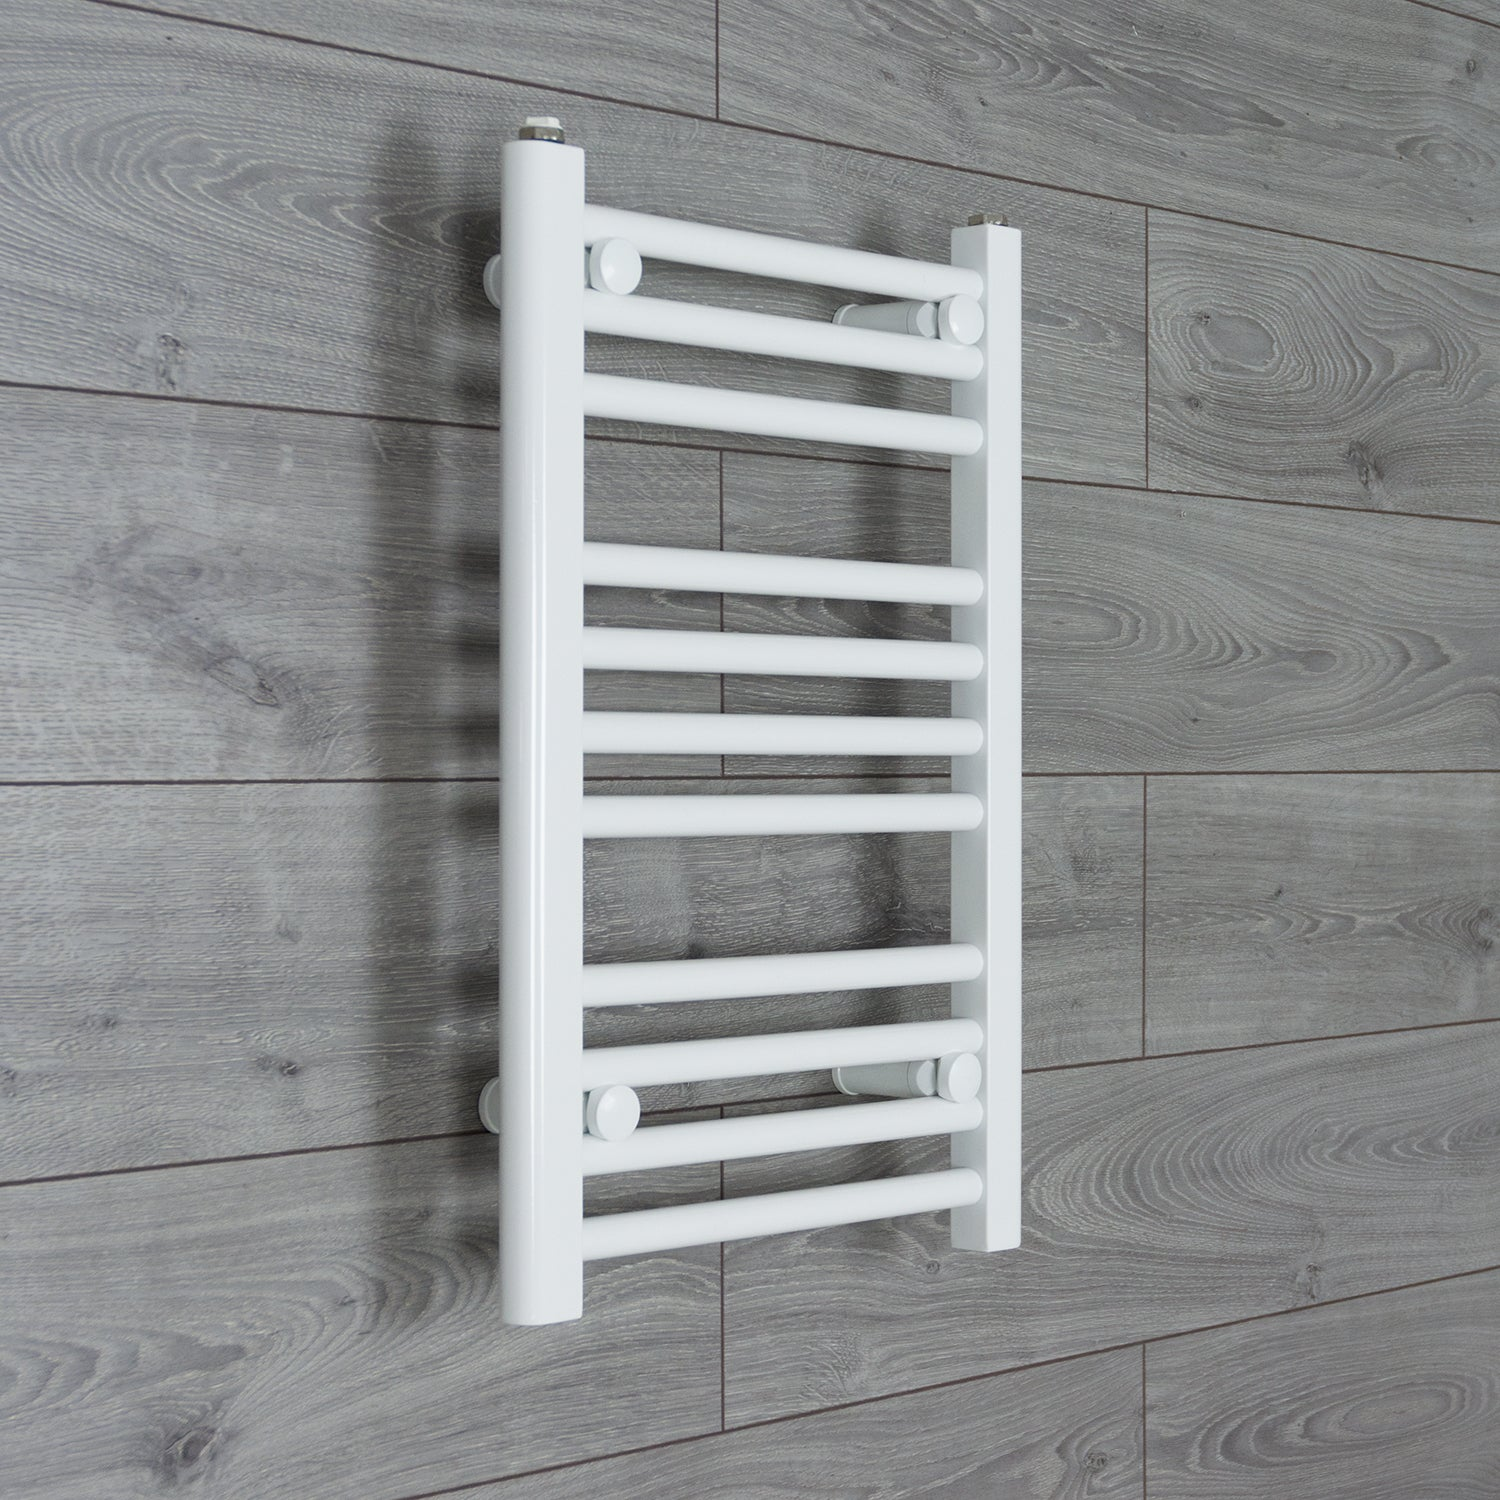 450mm Wide 600mm High White Towel Rail Radiator